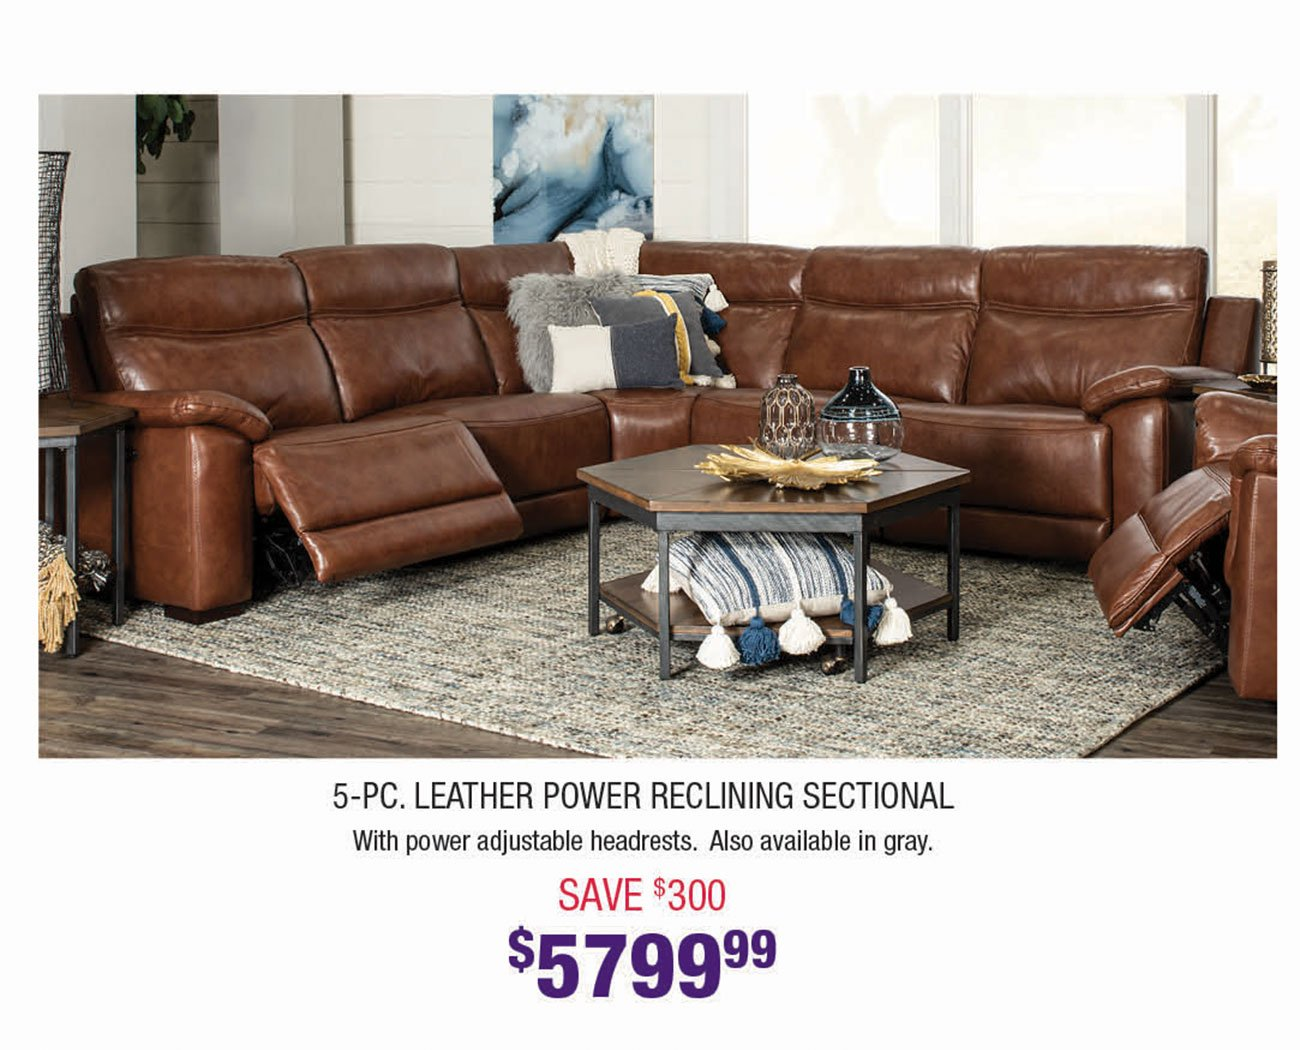 Brown-Leather-Power-Reclining-Sectional